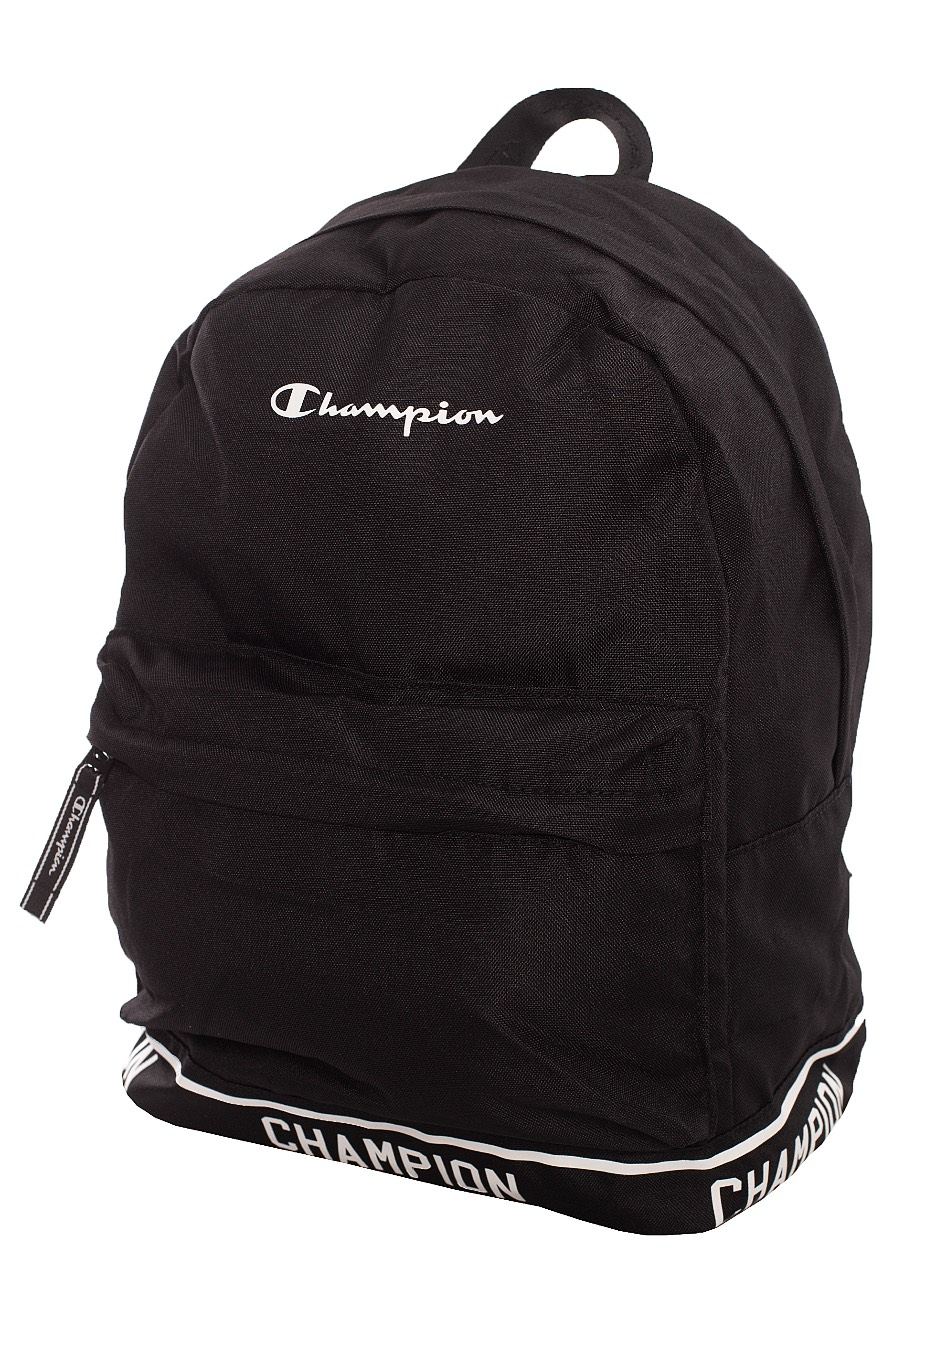 Legacy Bags Allover Nbk Backpack